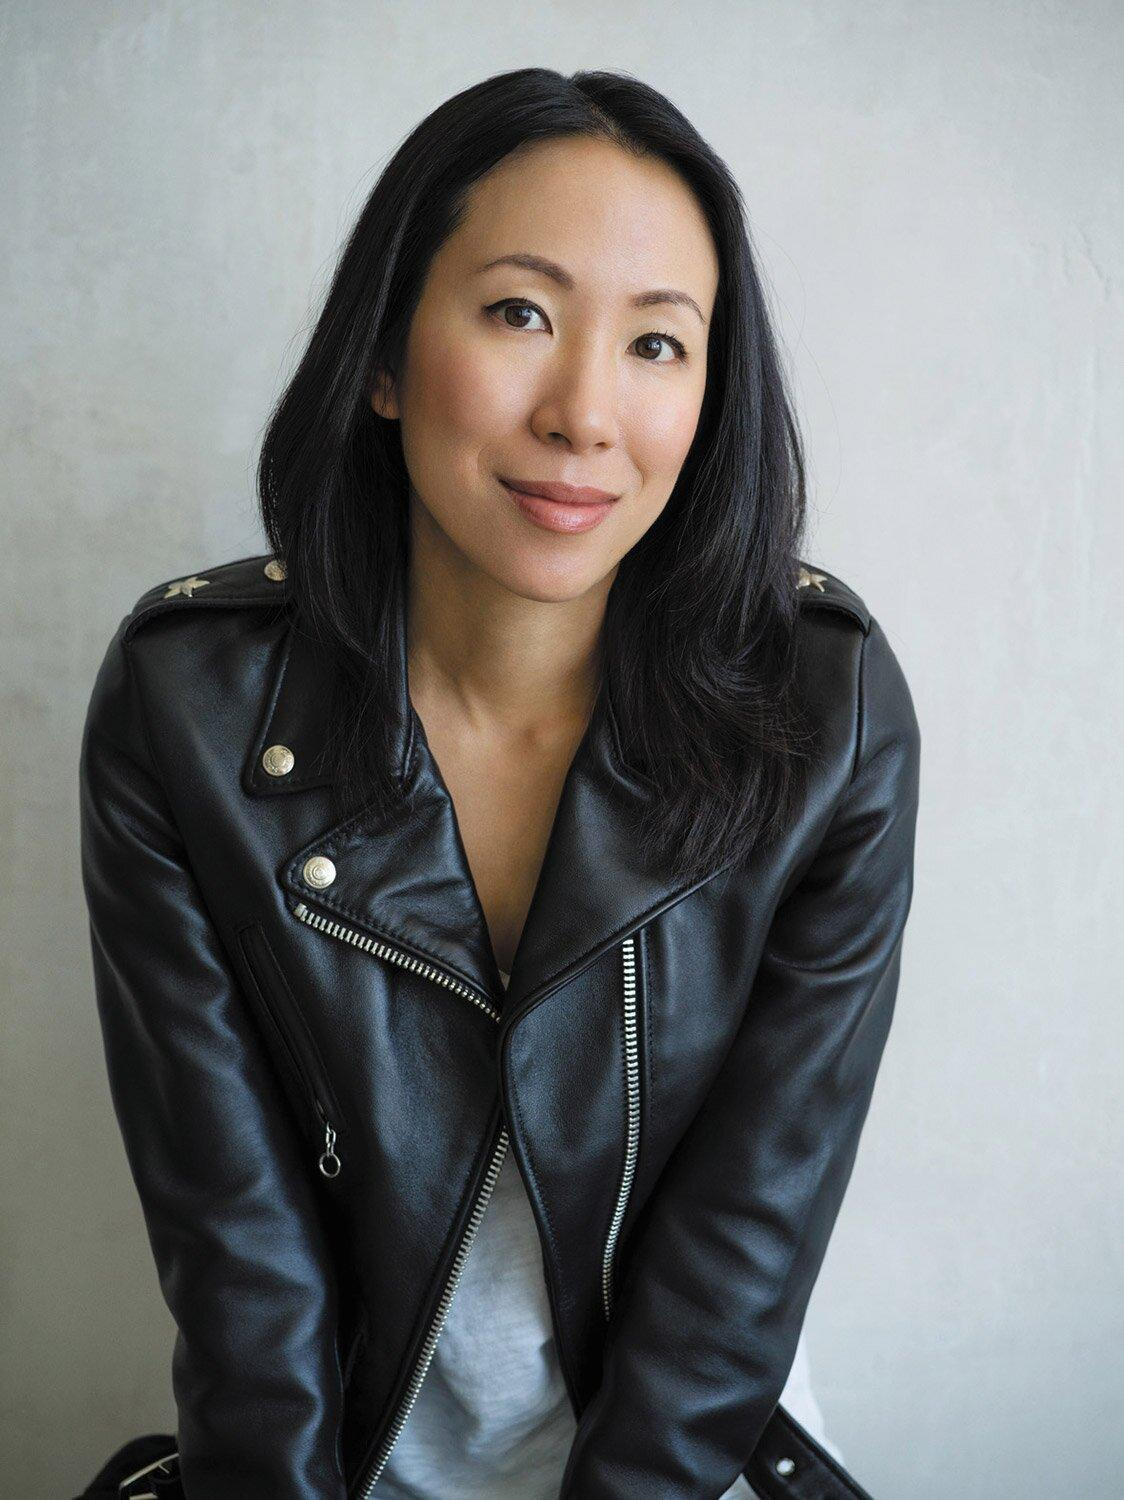 uk.sports.yahoo.com: Author Kathy Wang Faced 'Pressure' to Write Only Asian Characters 'Engaging' in 'Asian Things'